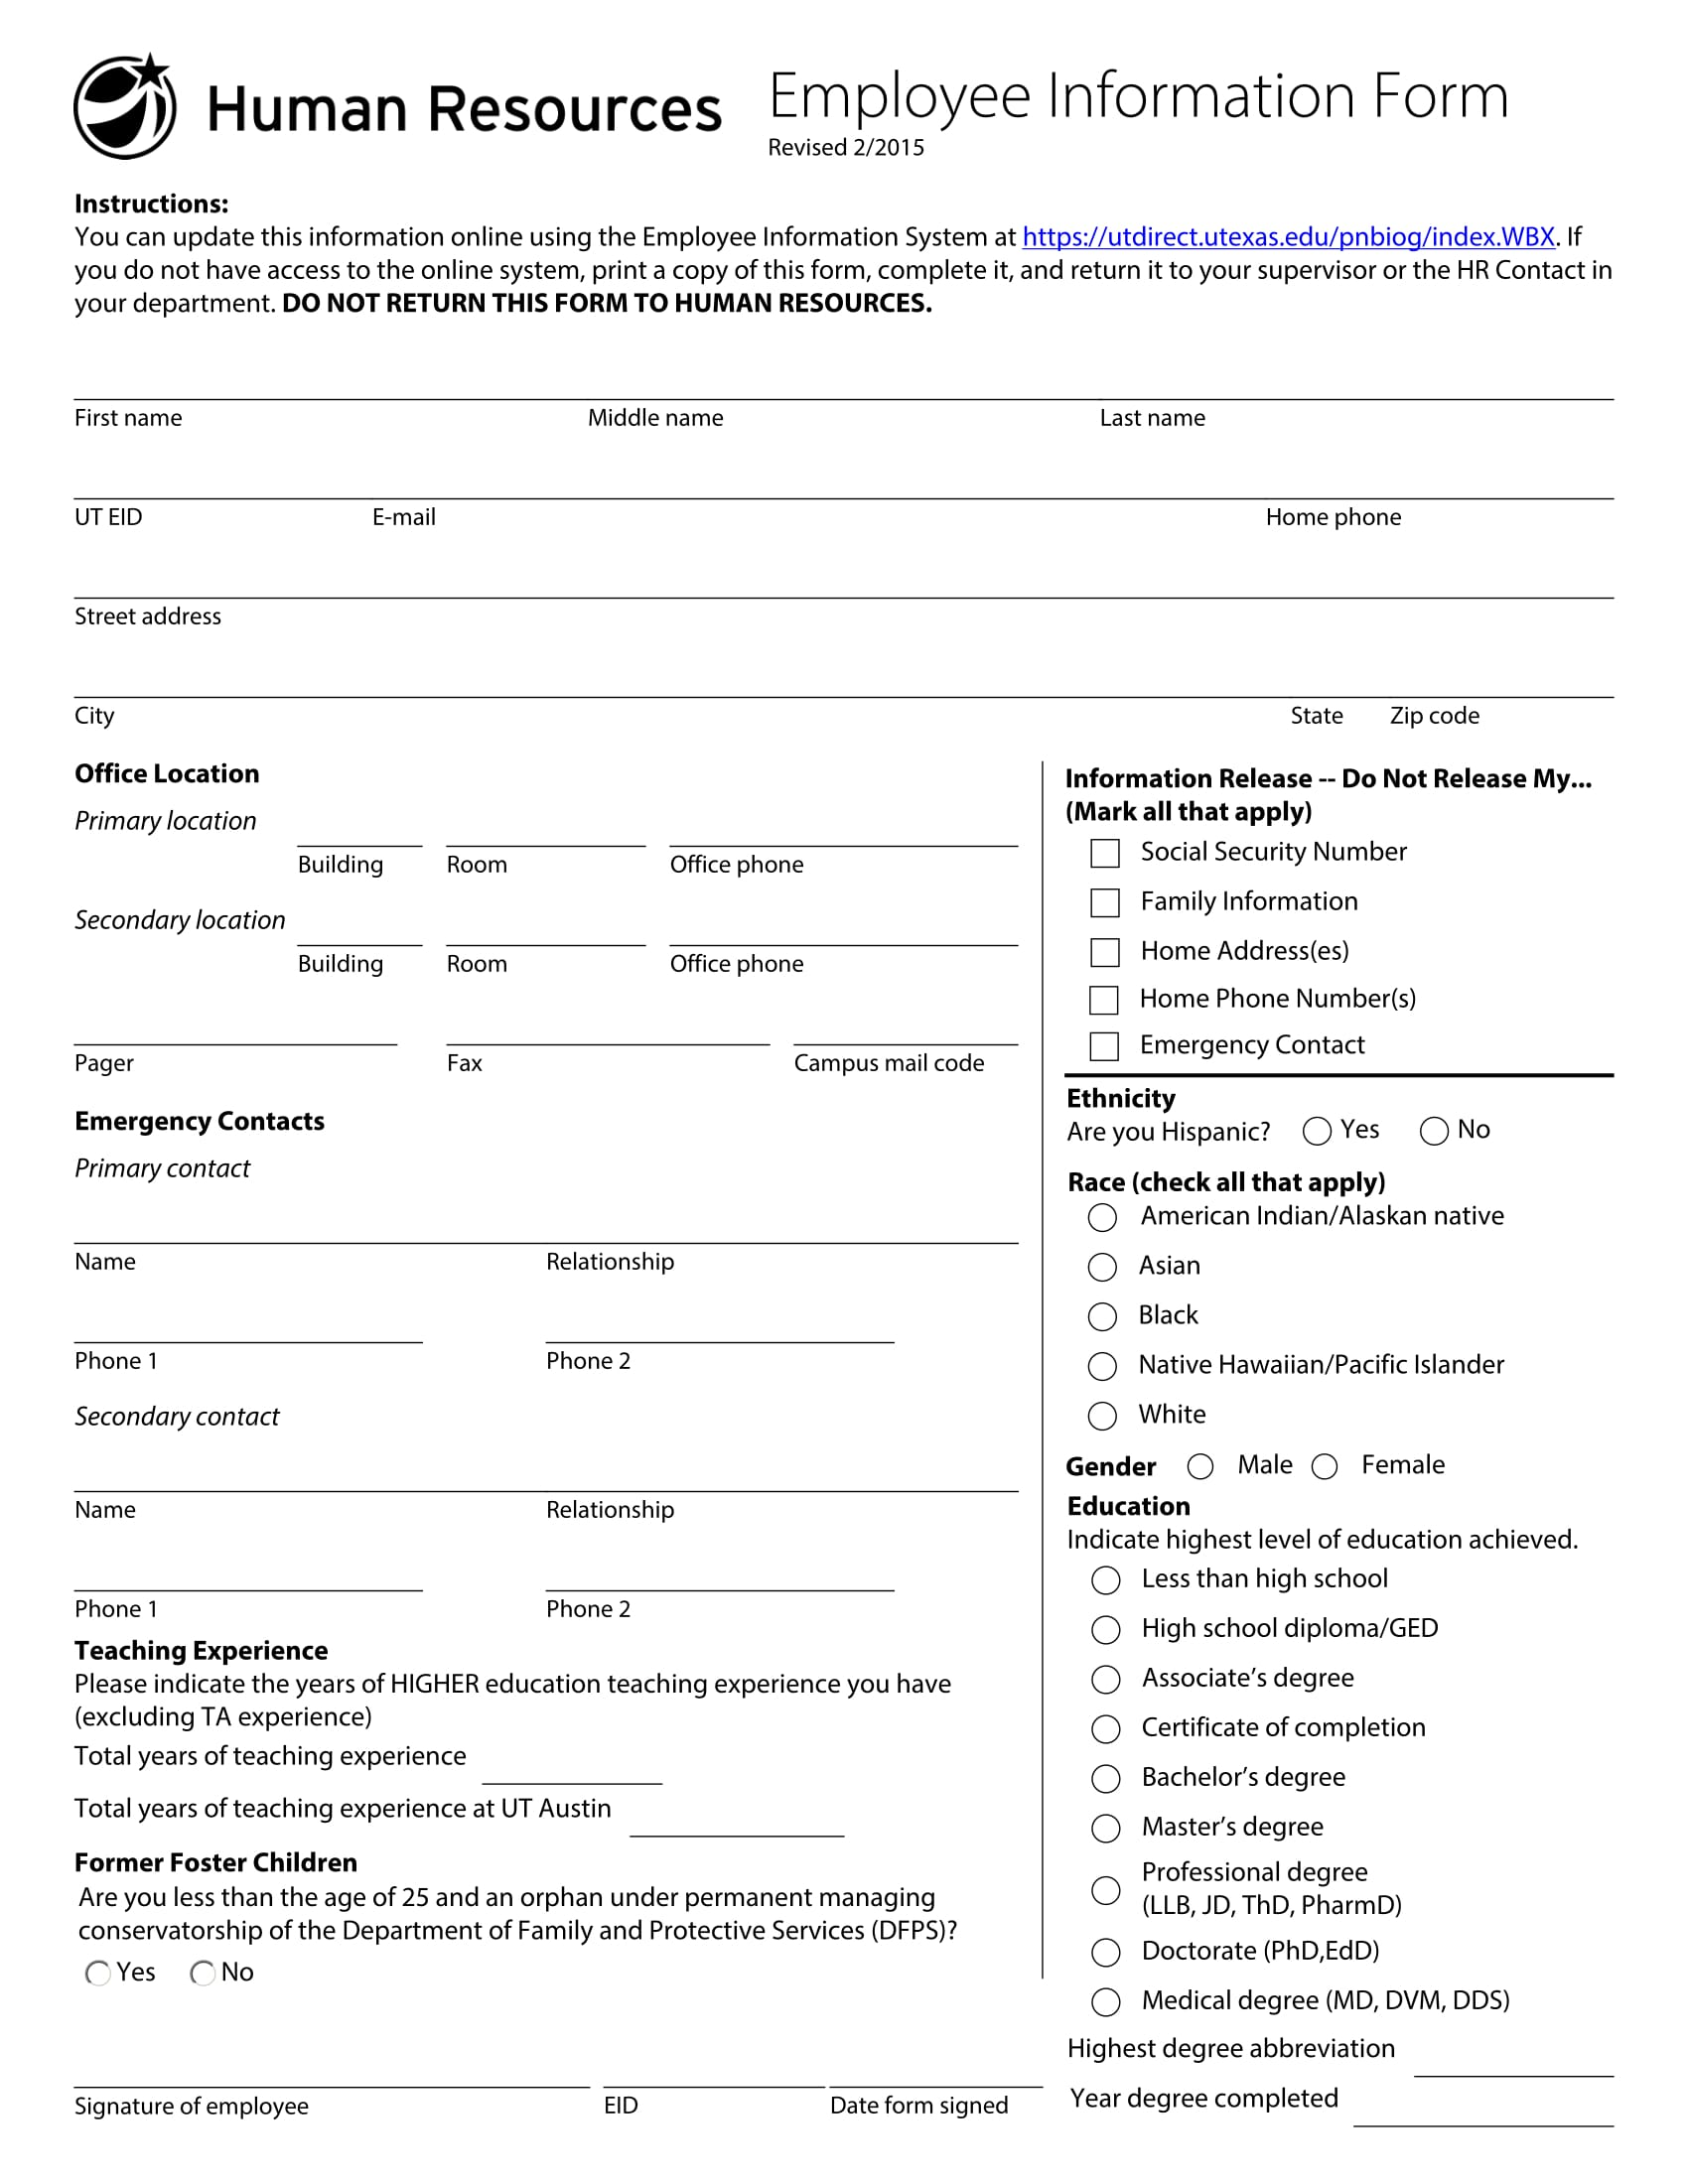 fillable employee information form 1